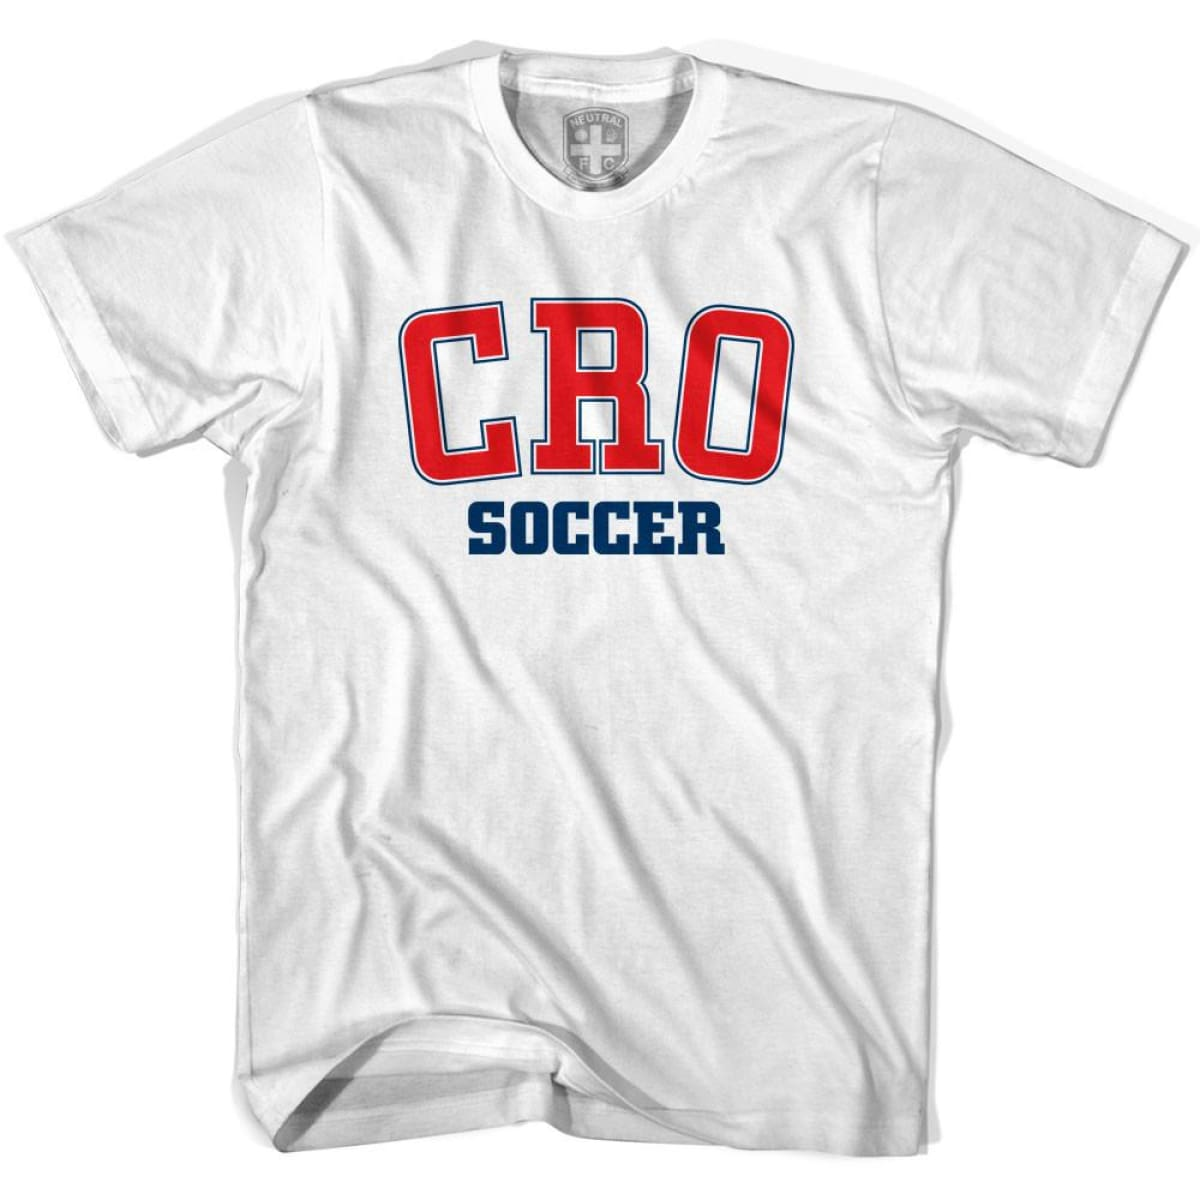 Croatia CRO Soccer Country Code T-shirt - White / Youth X-Small - Ultras Soccer T-shirts